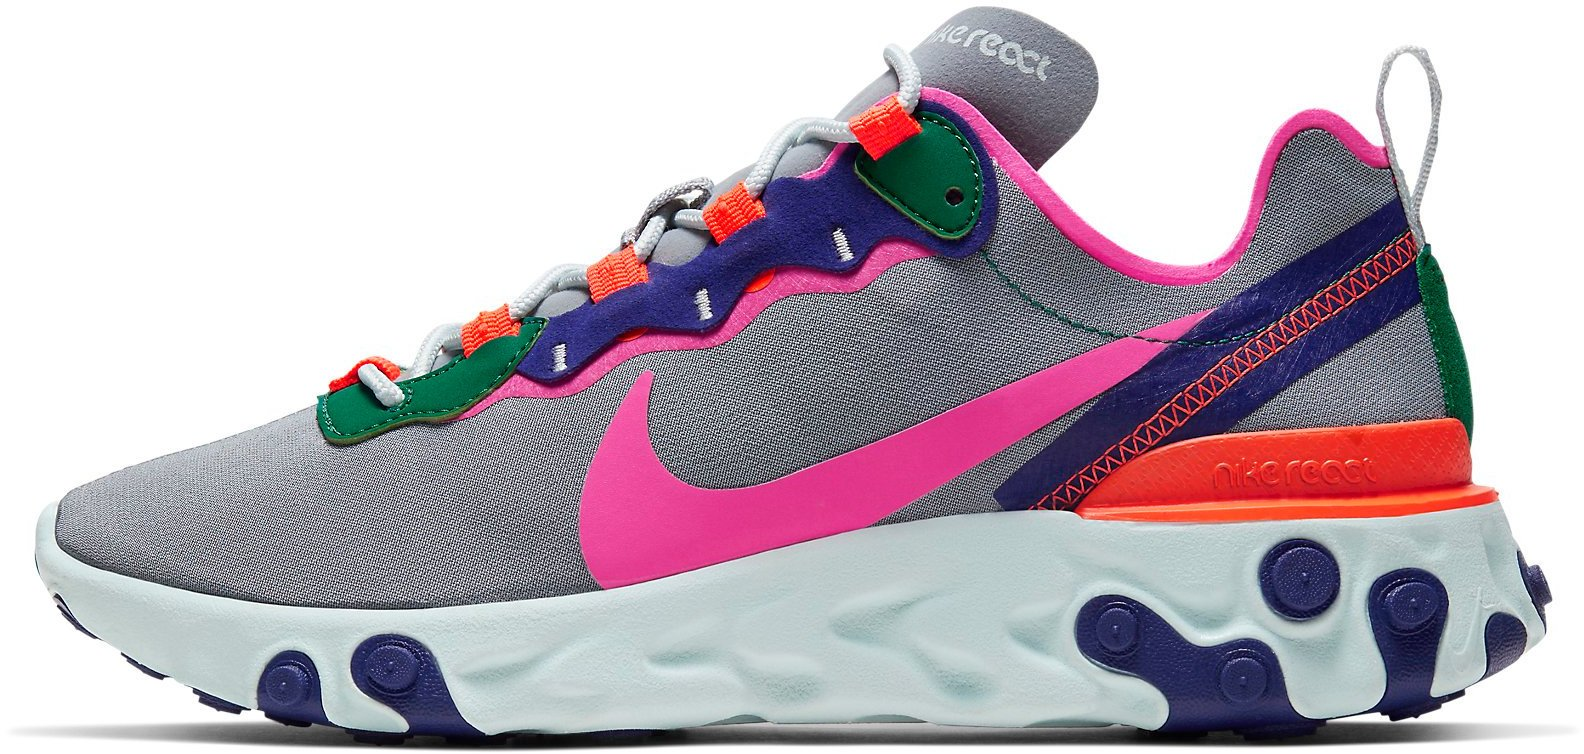 Zapatillas Nike W REACT ELEMENT 55 bq2728 006 Talla 38 EU | 4,5 UK | 7 US | 24 CM